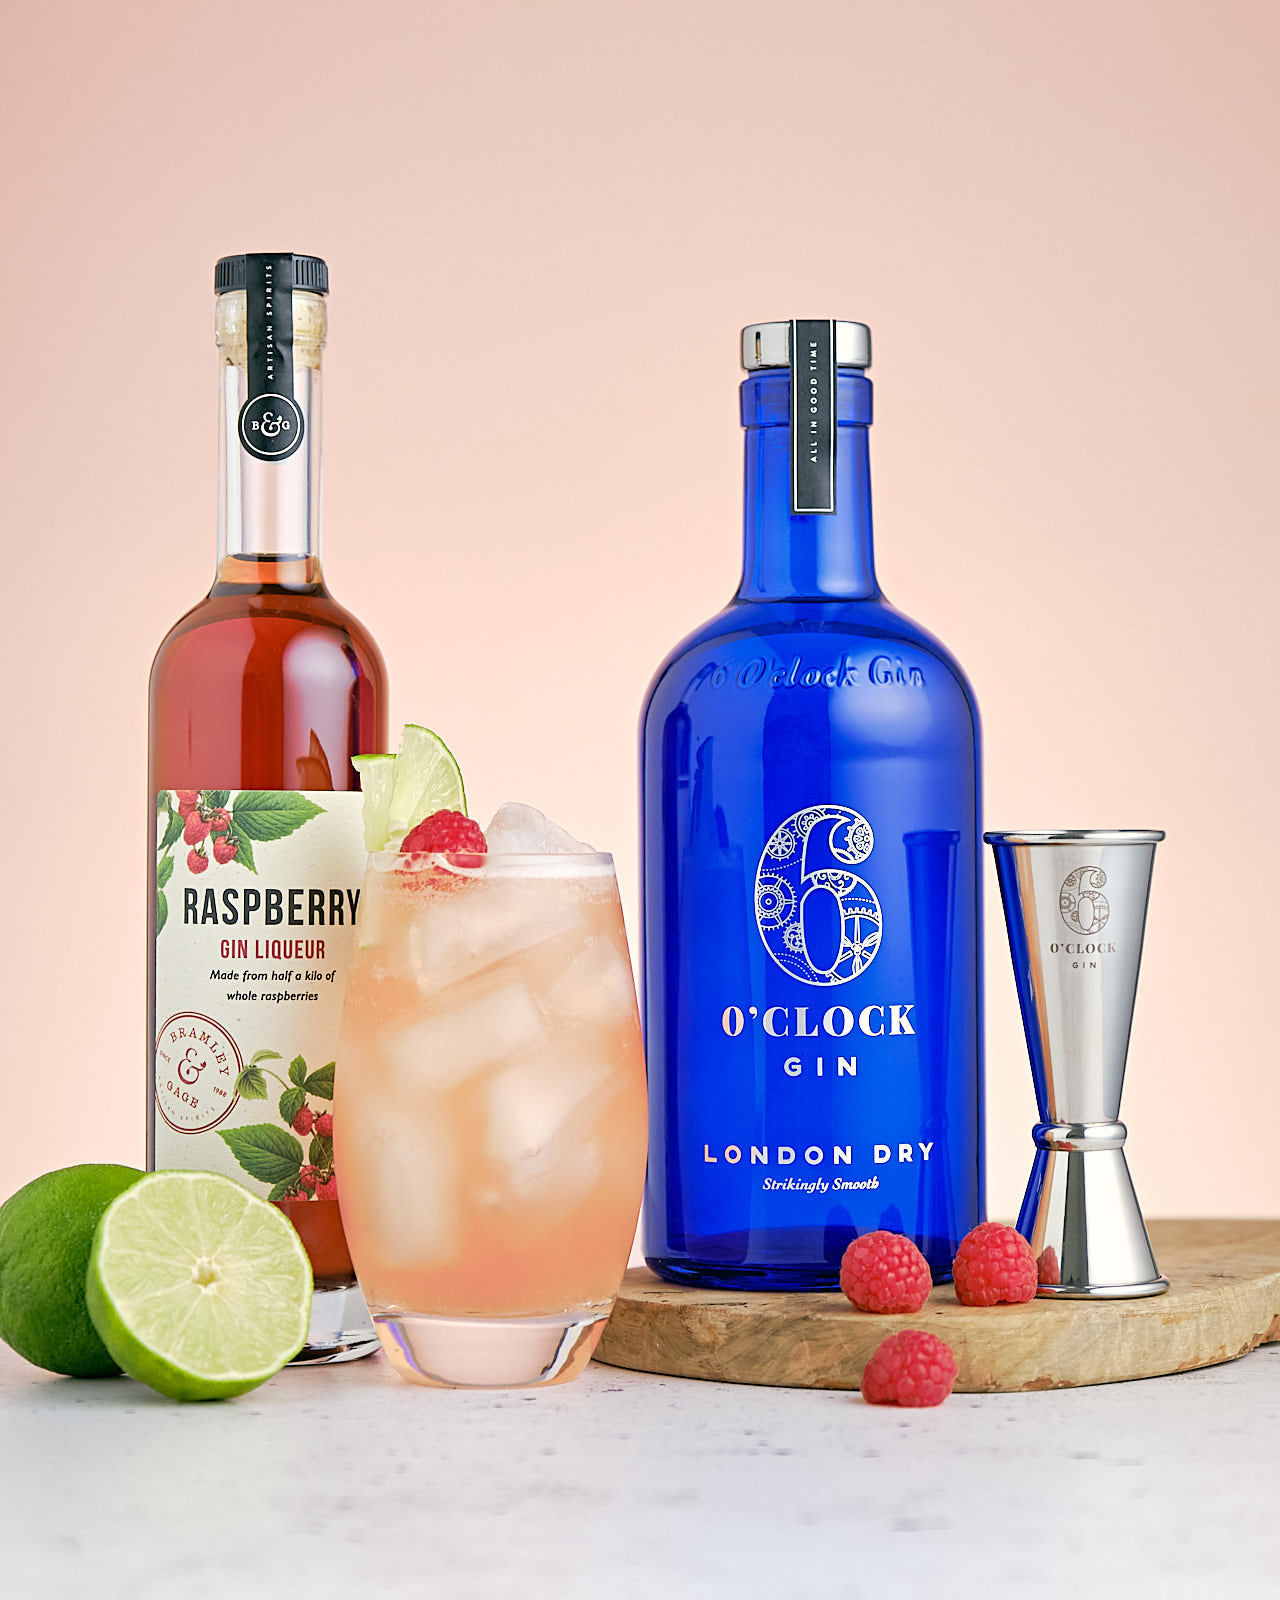 The Florodora gin cocktail - with Raspberry, Lime & Ginger Ales